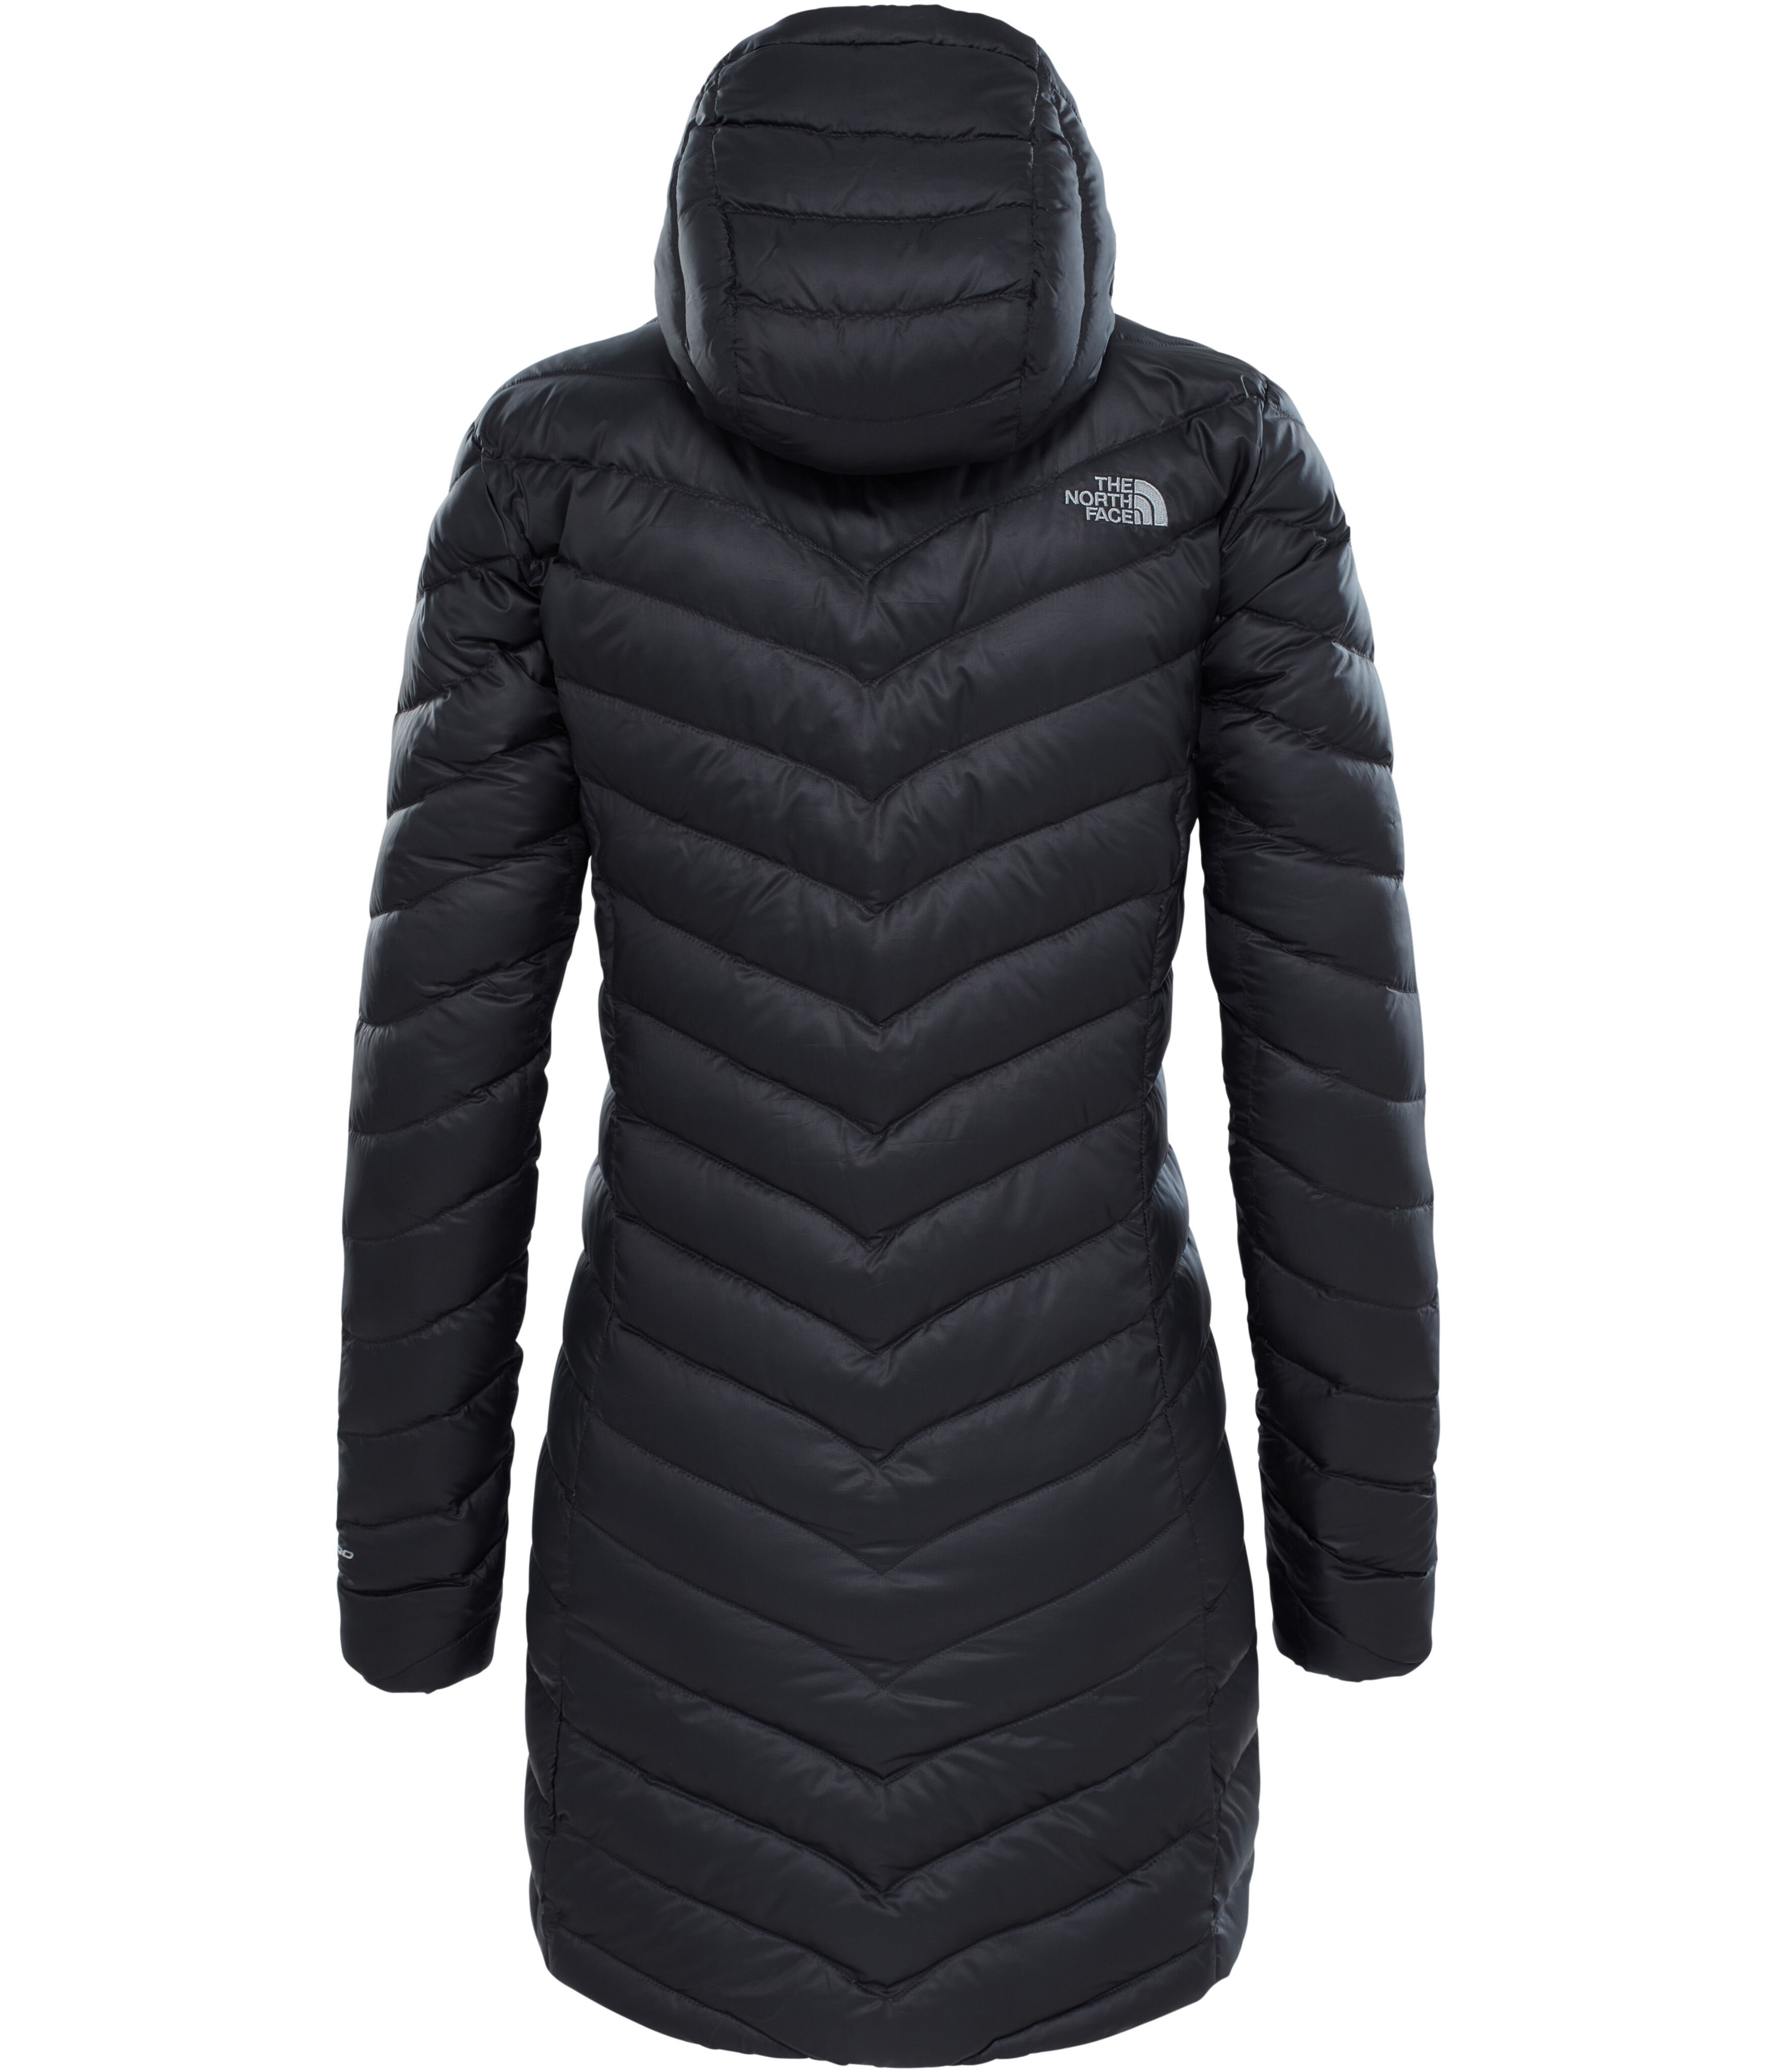 321cccefed3f5 The North Face Trevail - Chaqueta Mujer - negro